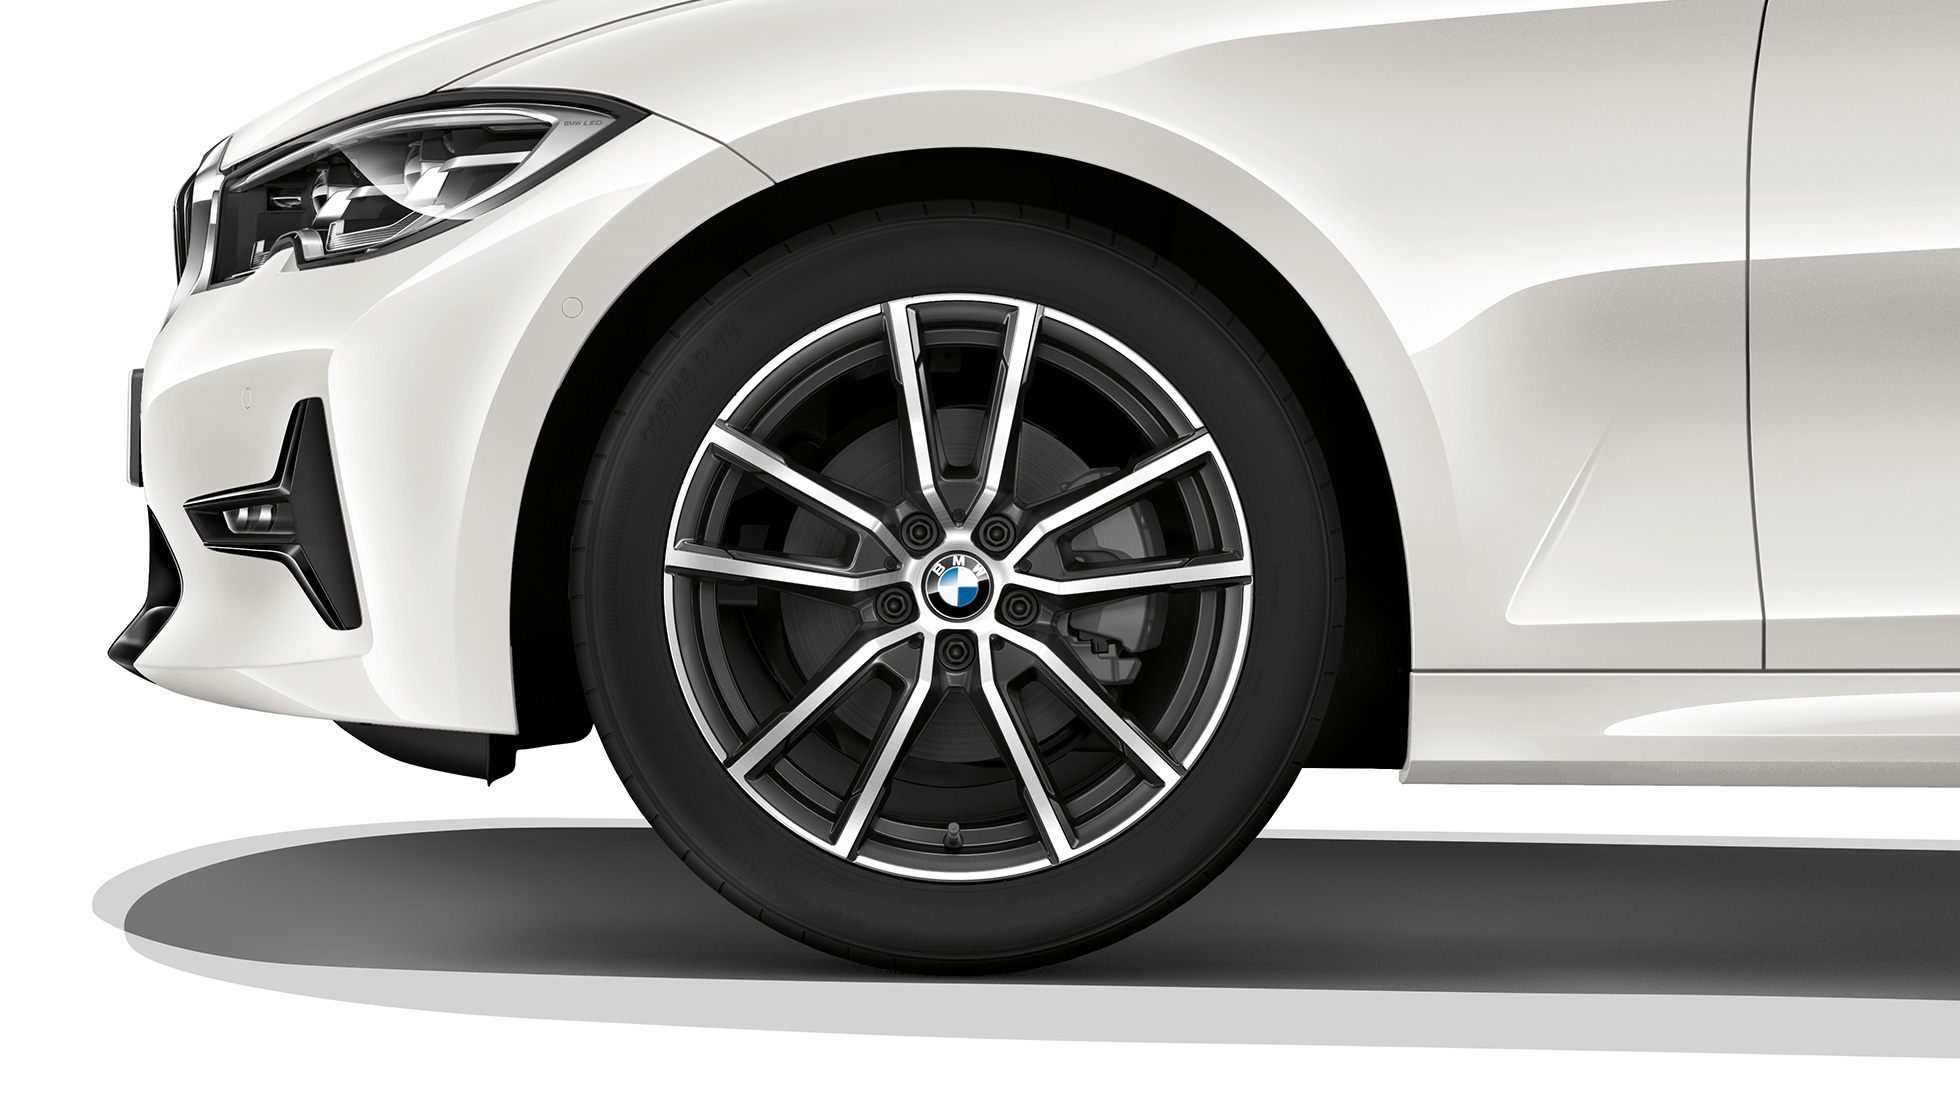 Close-up of the light alloy wheel of the BMW 3 Series Sedan with Model Sport Line equipment.